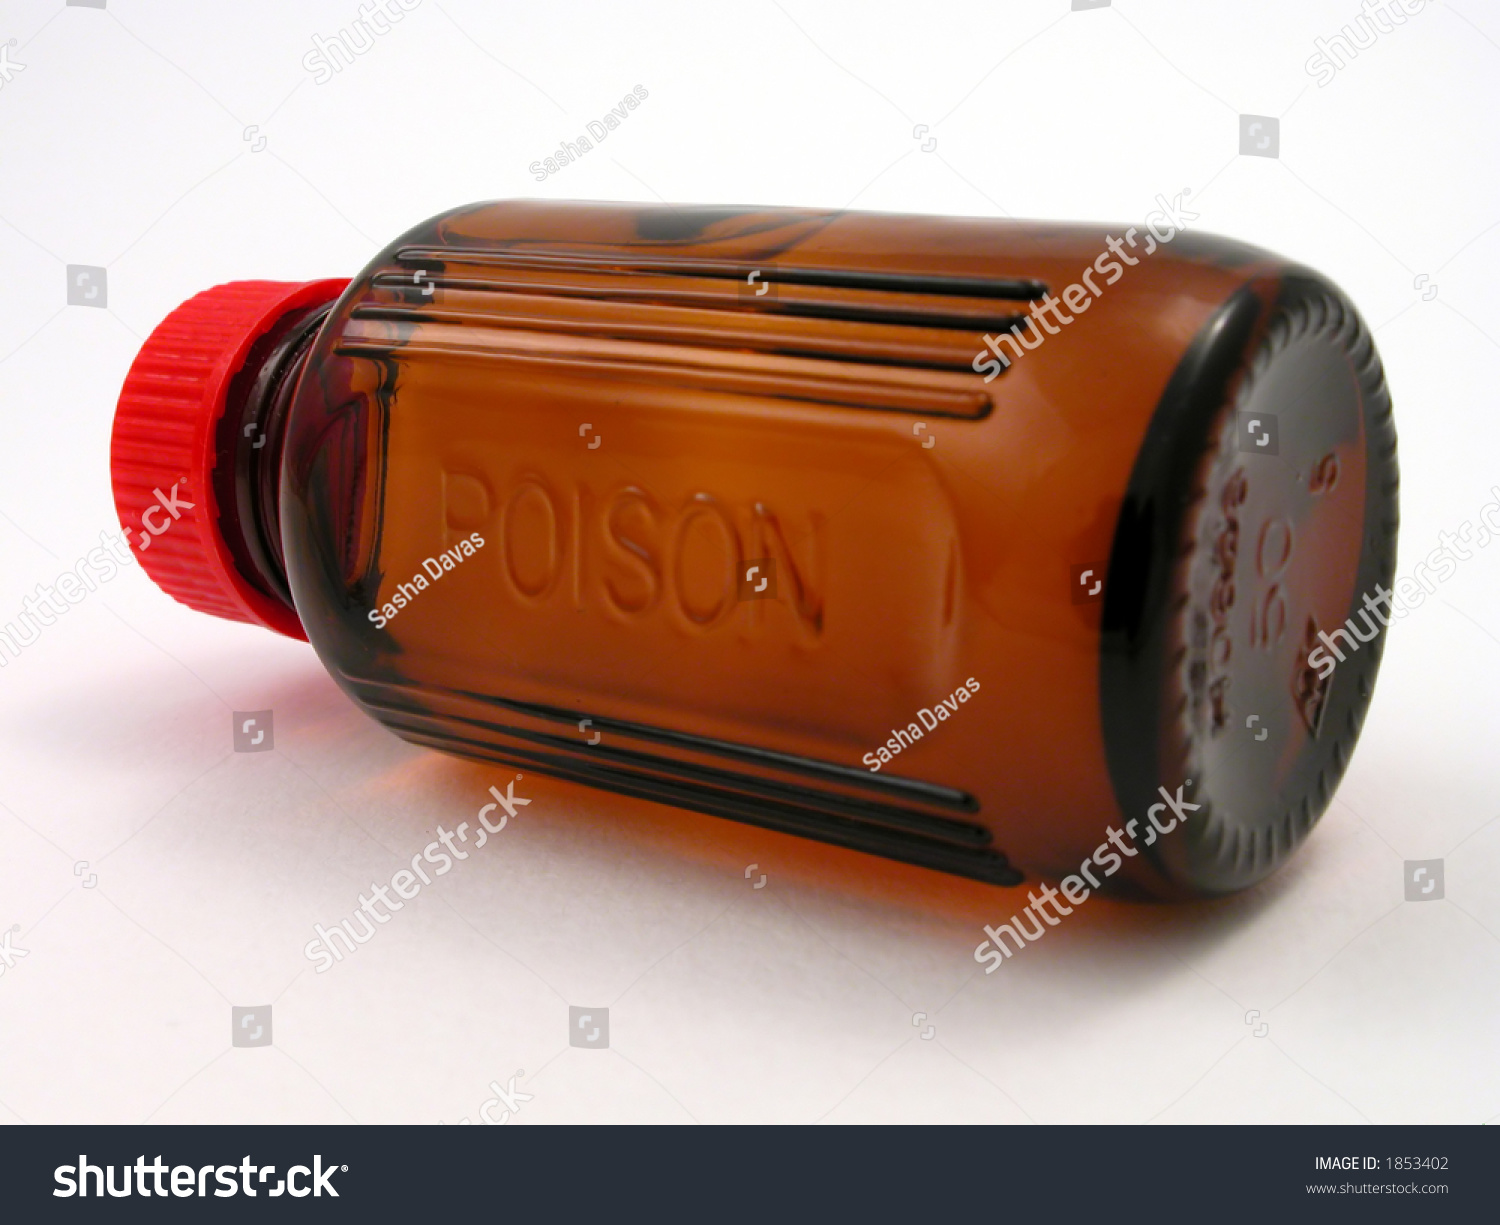 Small Poison Bottle With Red Cap Stock Photo 1853402 : Shutterstock